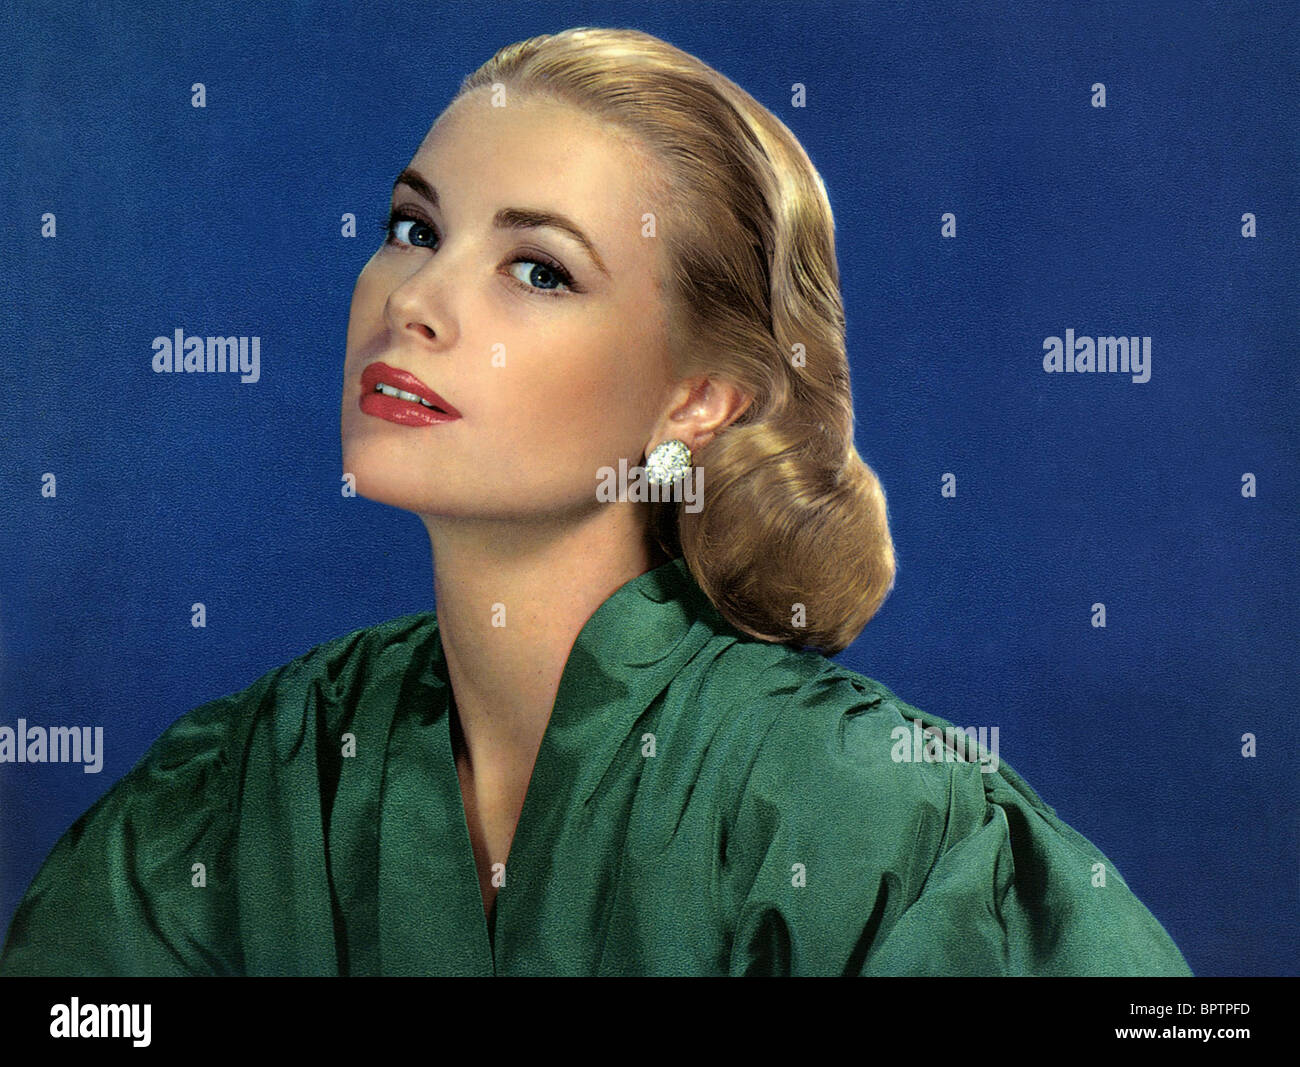 GRACE KELLY ACTRESS (1952) - Stock Image